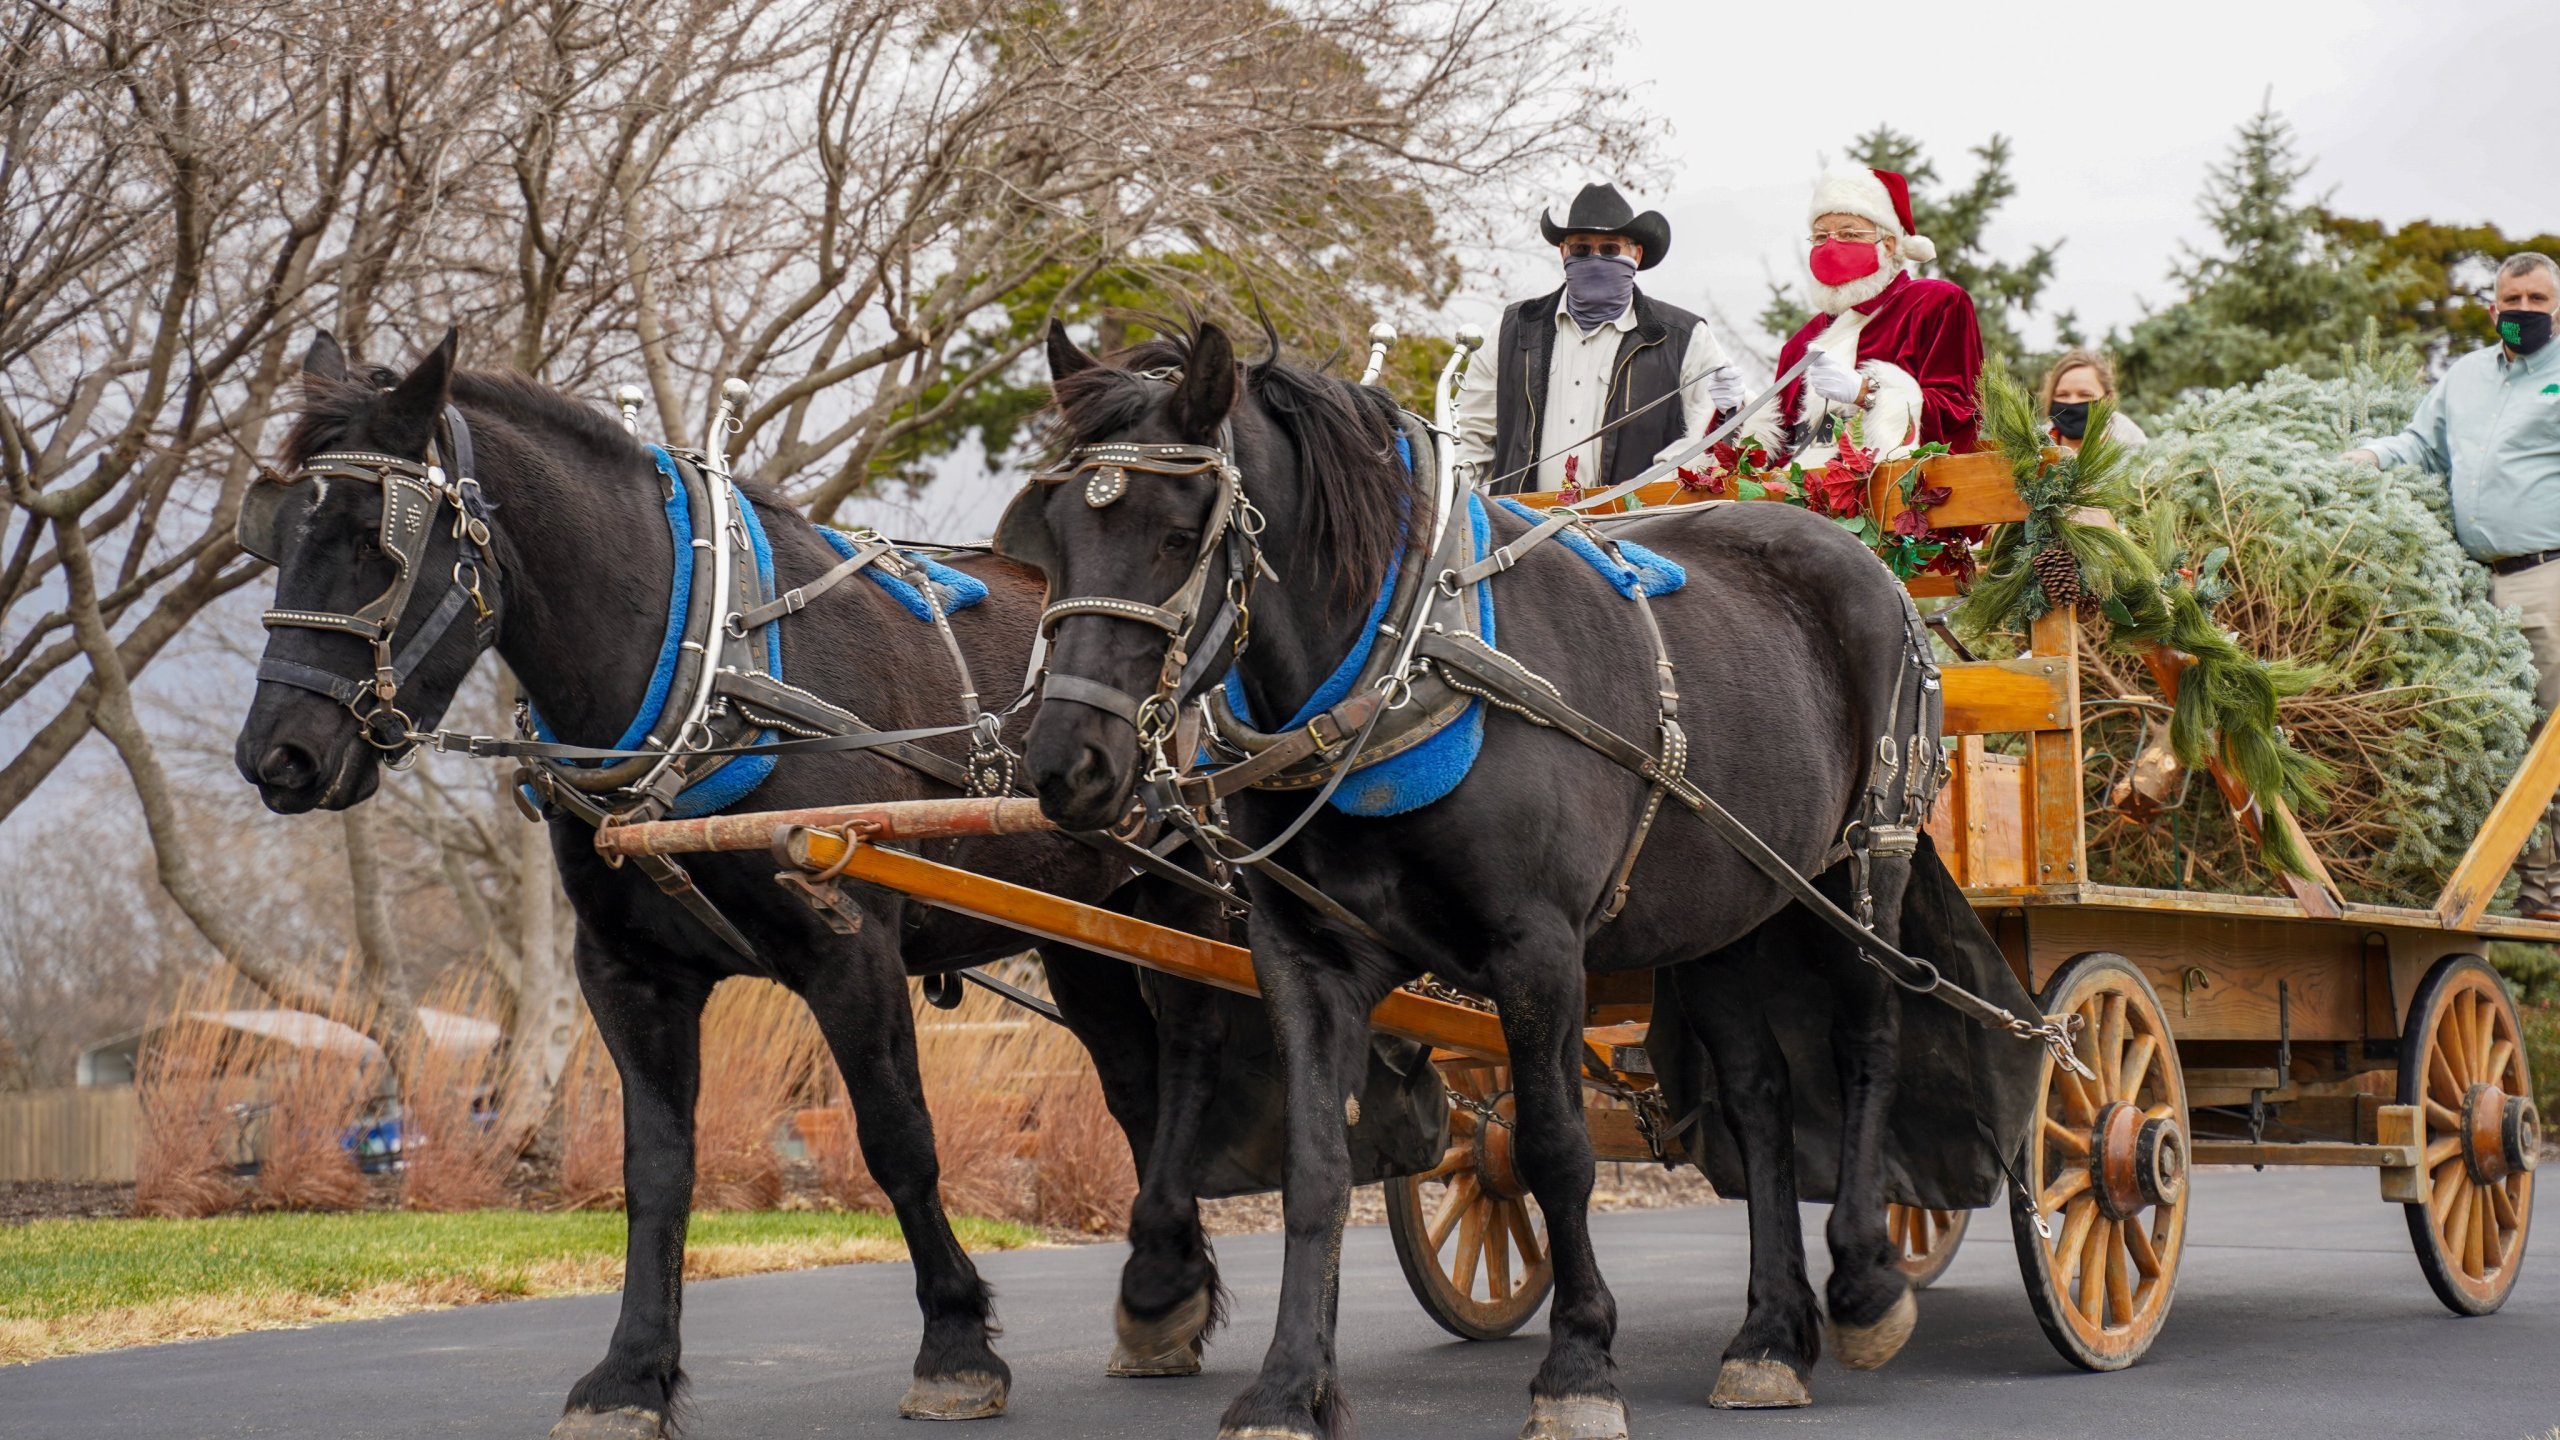 Governor welcomes Christmas tree carried by horse drawn carriage